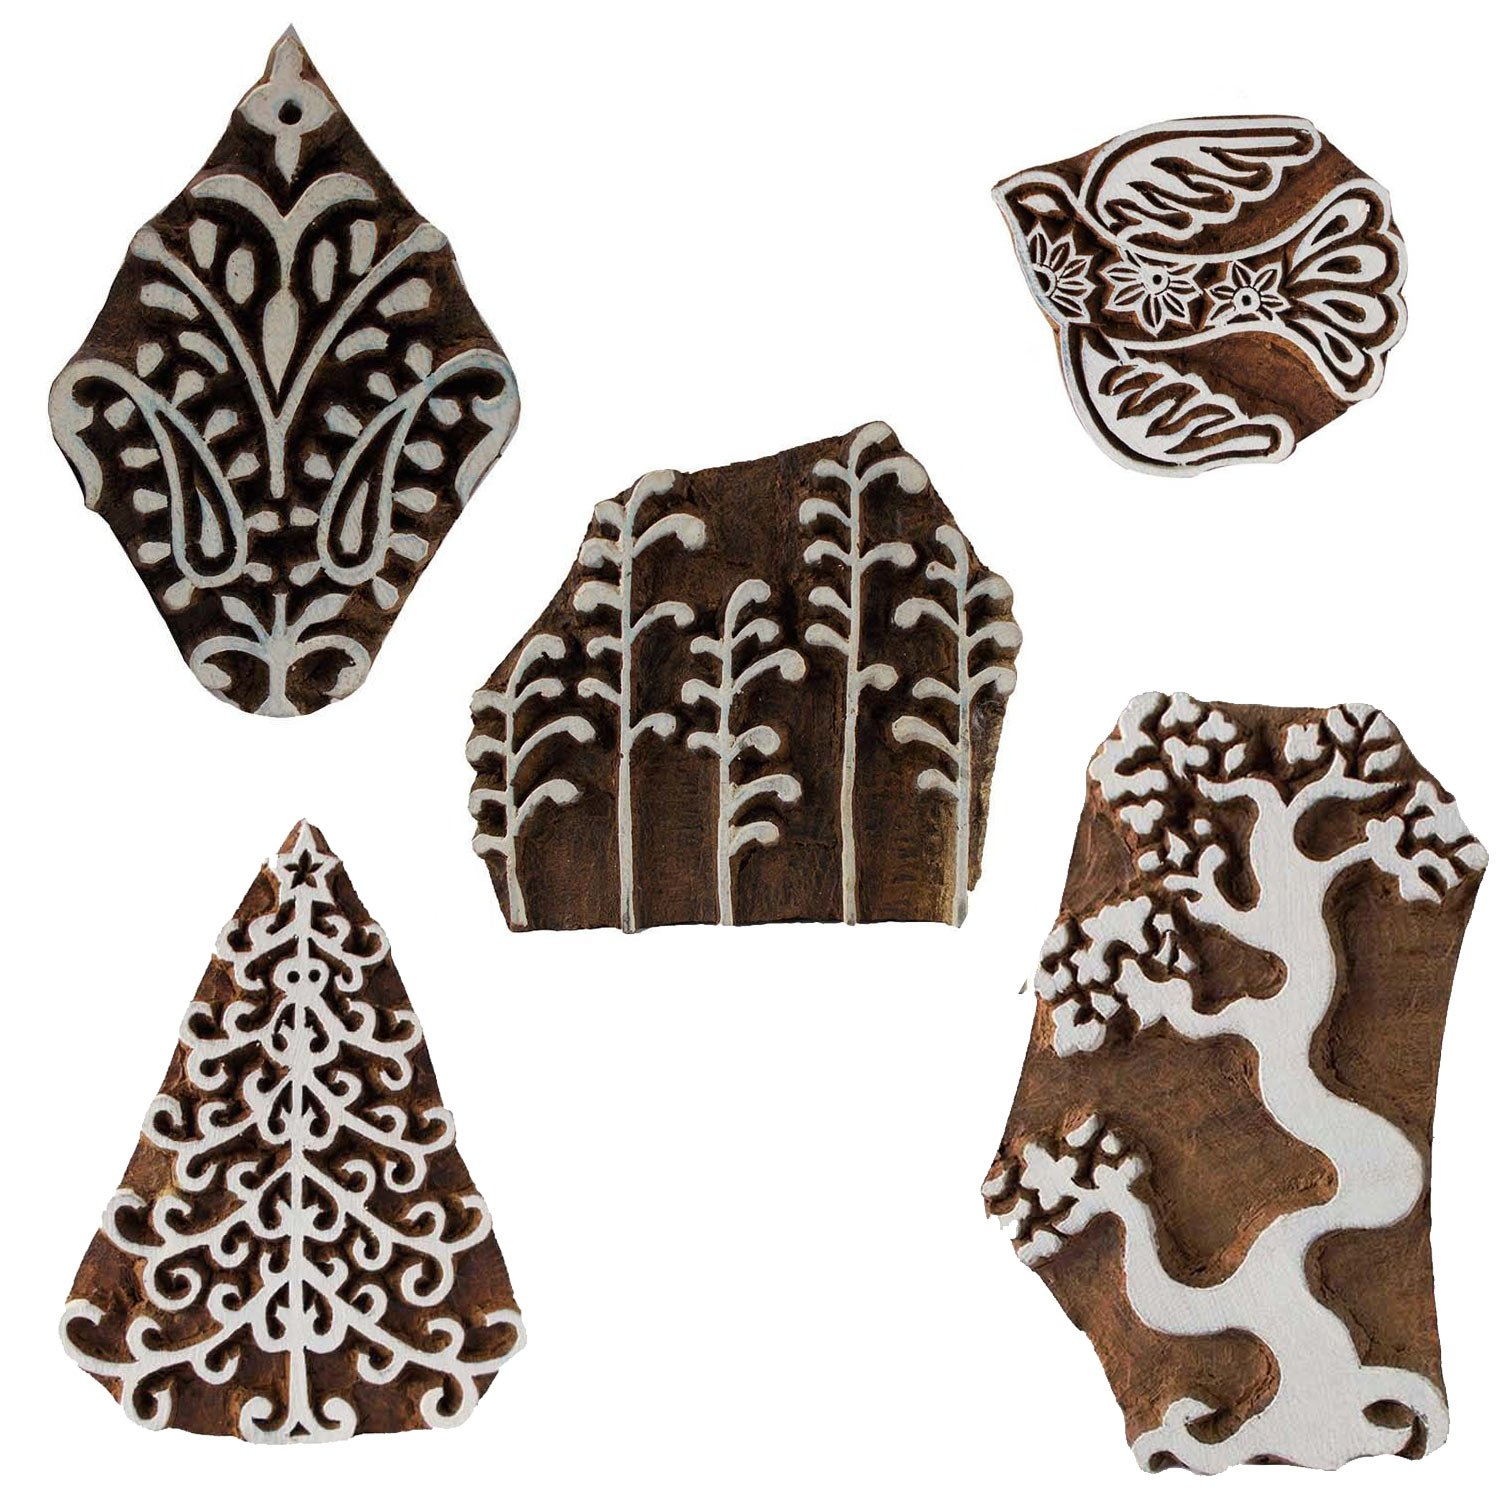 Pack of 5 Wooden Textile Handmade Christmas Tree Bird Floral Printing Block Clay Potter Craft Scrapbook Stamps